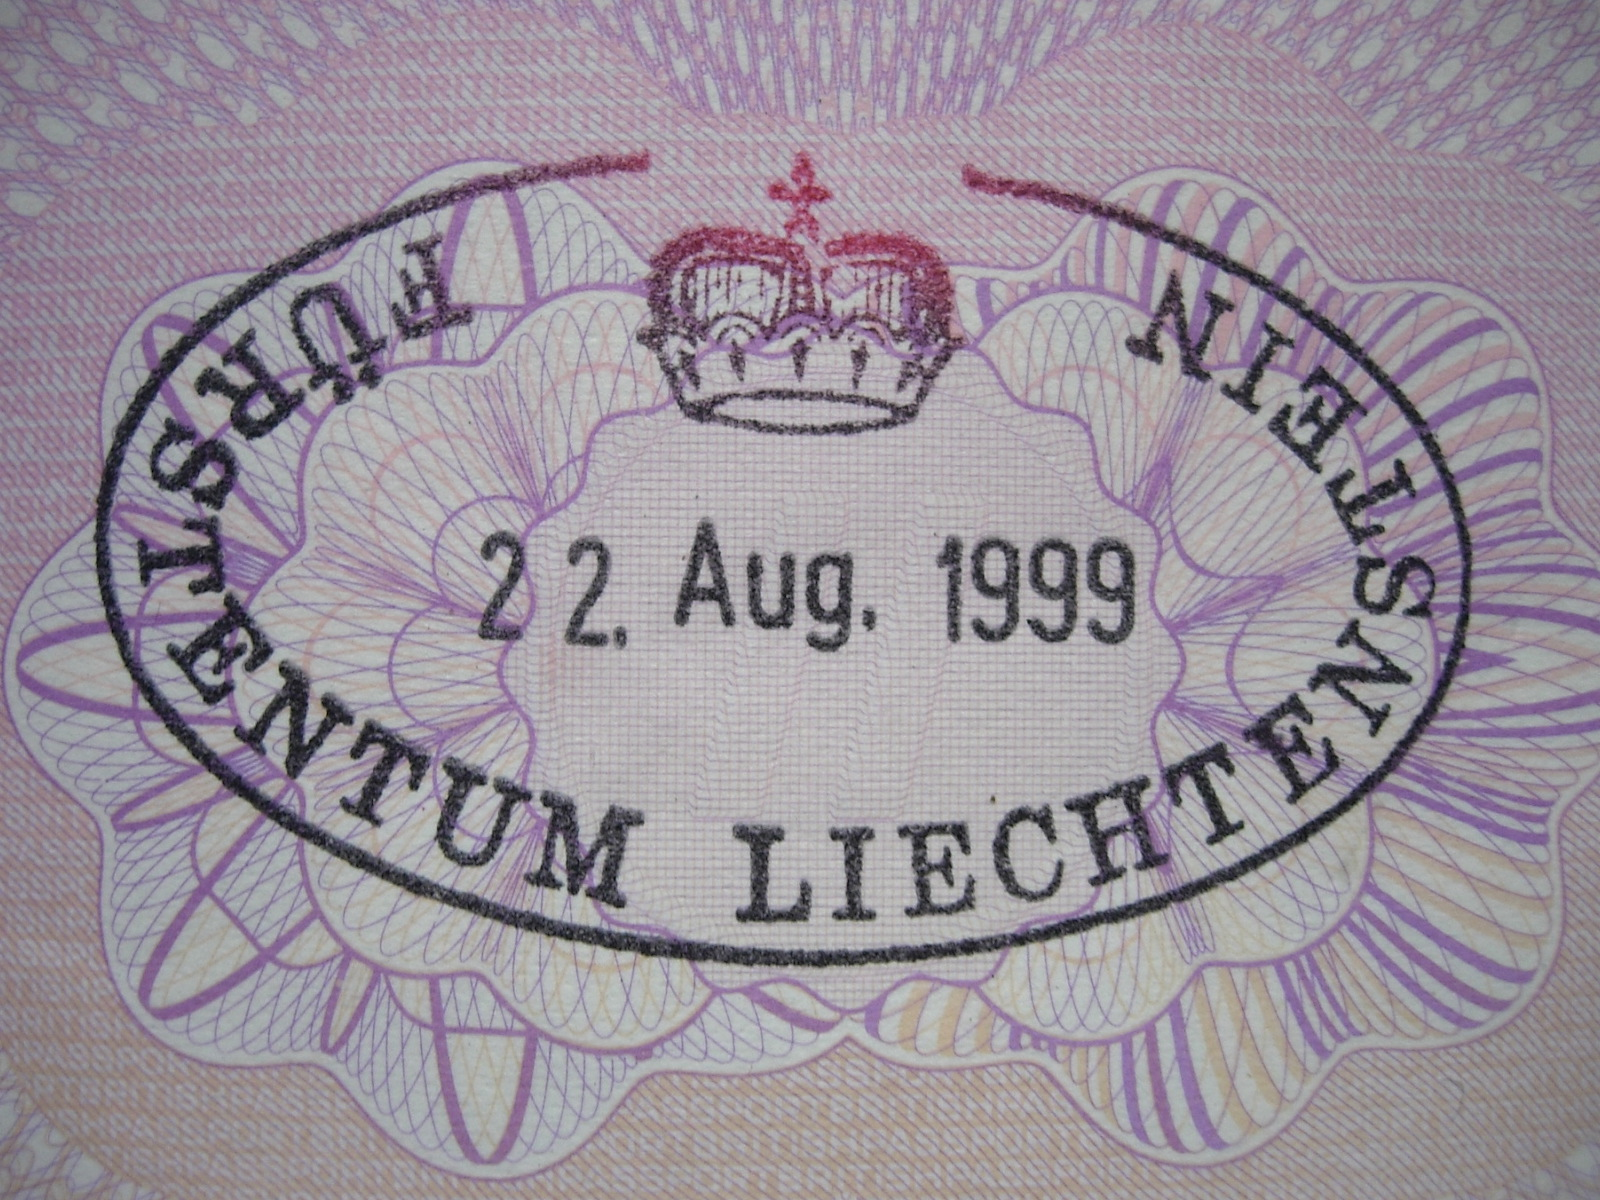 Passport stamp for Liechtenstein